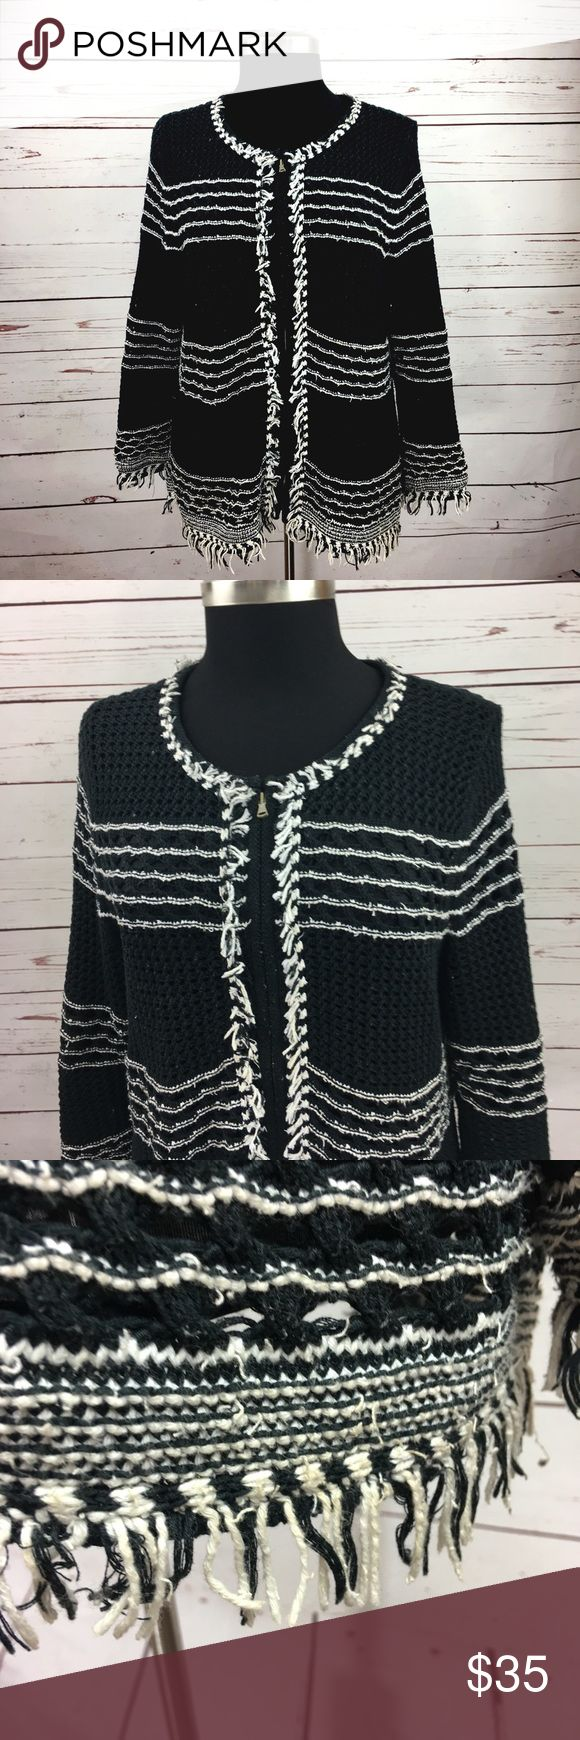 "Ann Taylor Black Crochet Cardigan Sweater Ann Taylor Women Black and white crochet zip up cardigan sweater. Size large. Fringe look at sleeves and hem. Fully lined.   Underarm to Underarm: 21"" Top shoulder to bottom: 26""  7WSW11171385 Ann Taylor Sweaters Cardigans"